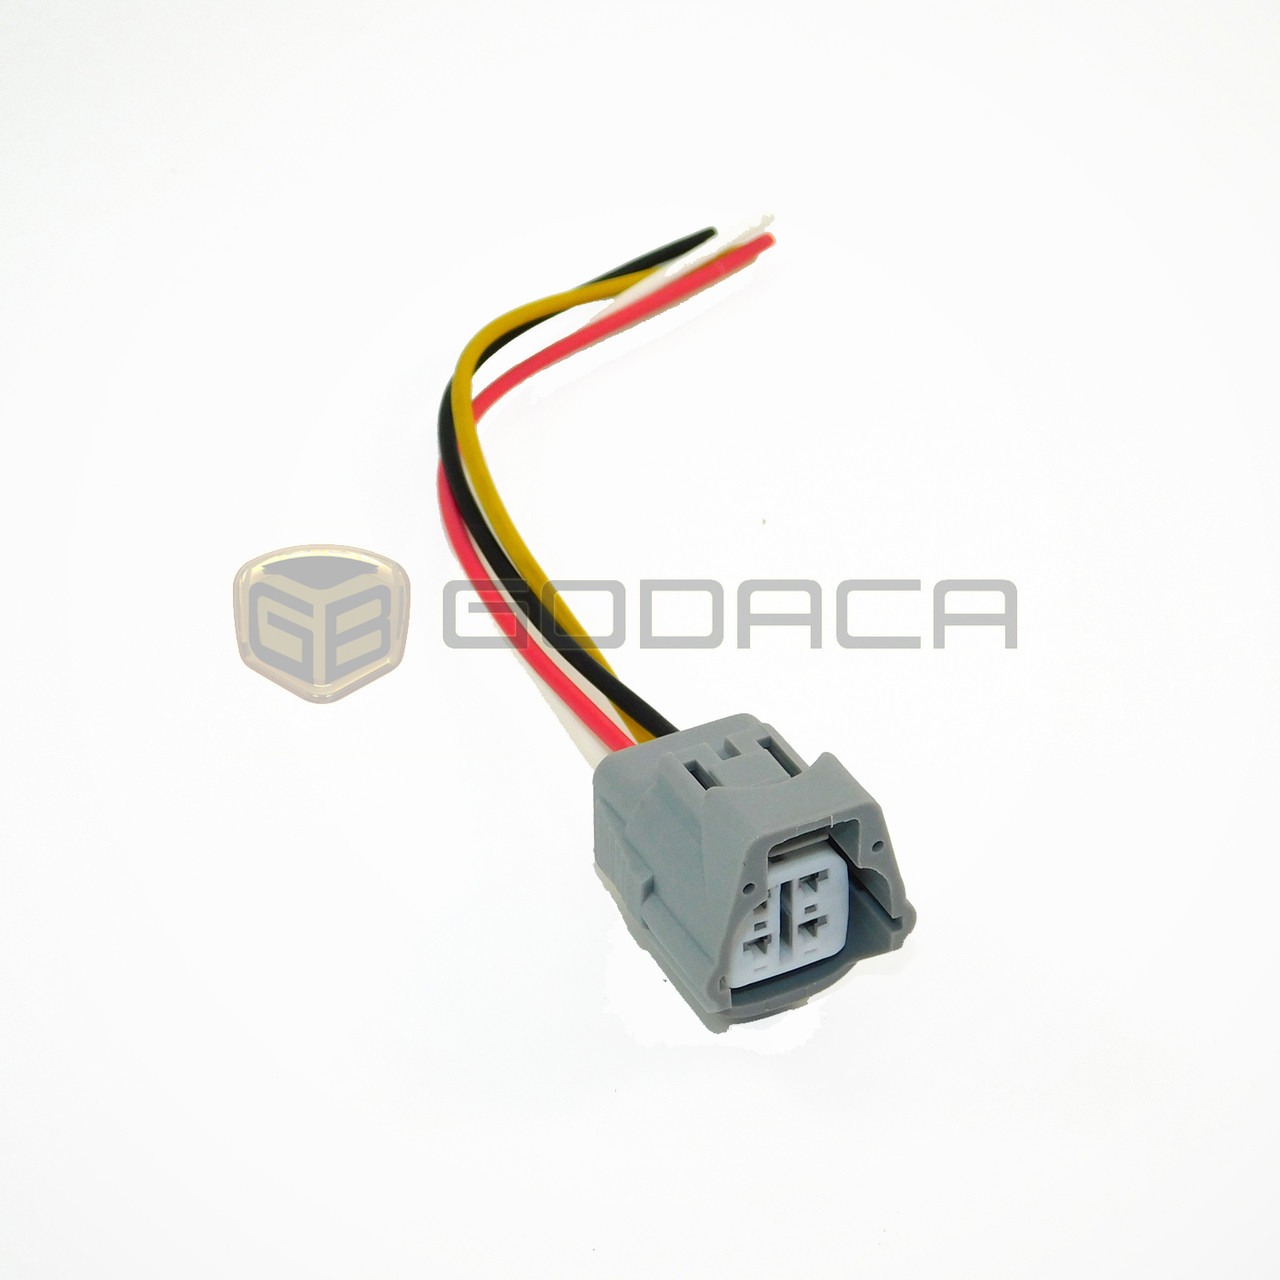 1 x connector 4 way toyota 2jz a c 4p connector pigtail wiring rh godaca com Engine Wiring Pigtails Pigtail Wiring Harness